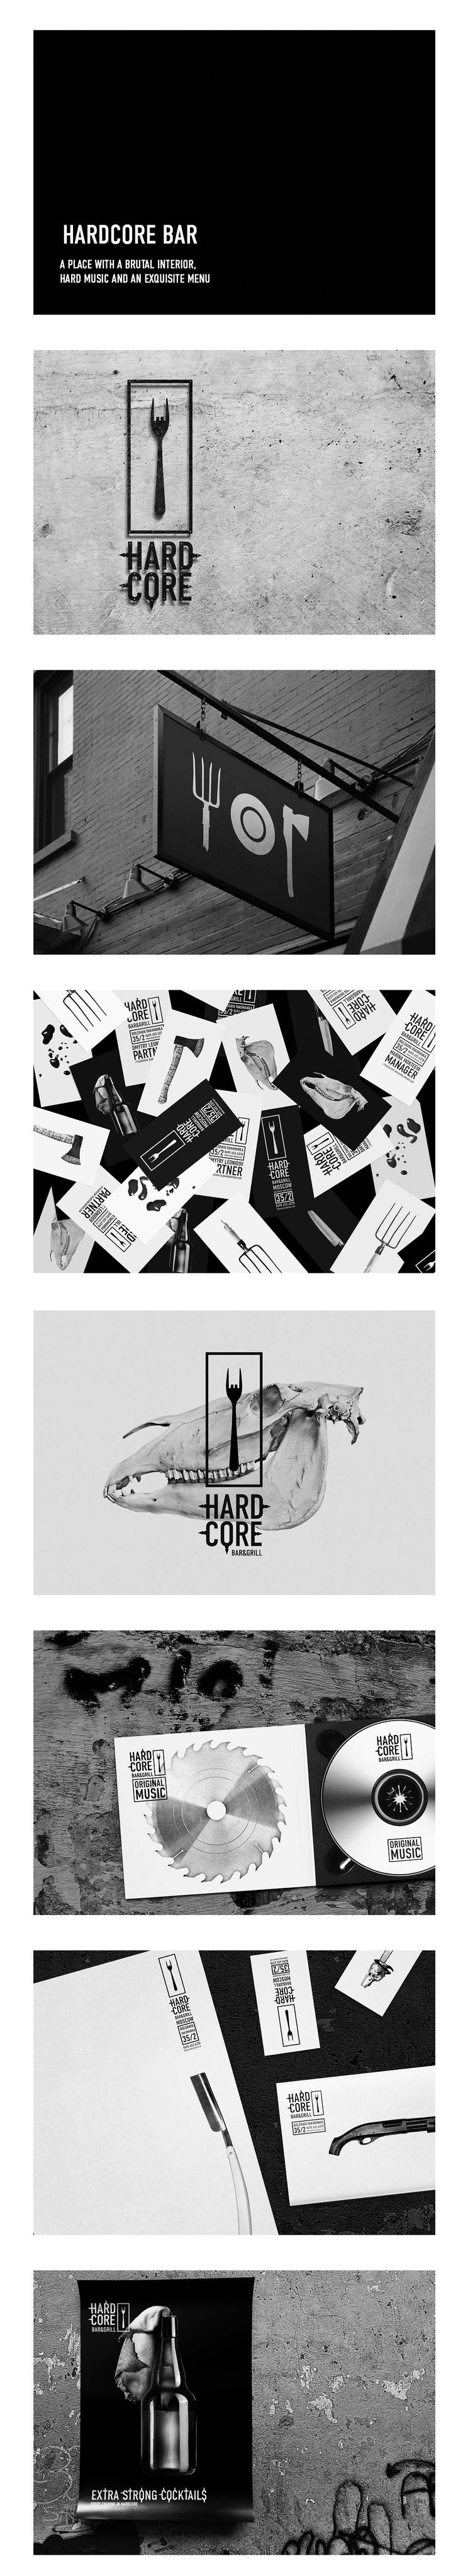 Identity / Hardcore bar / urobarbos | #stationary #corporate #design #corporatedesign #identity #branding #marketing < repinned by www.BlickeDeeler.de | Visit our website: www.blickedeeler.de/leistungen/corporate-design